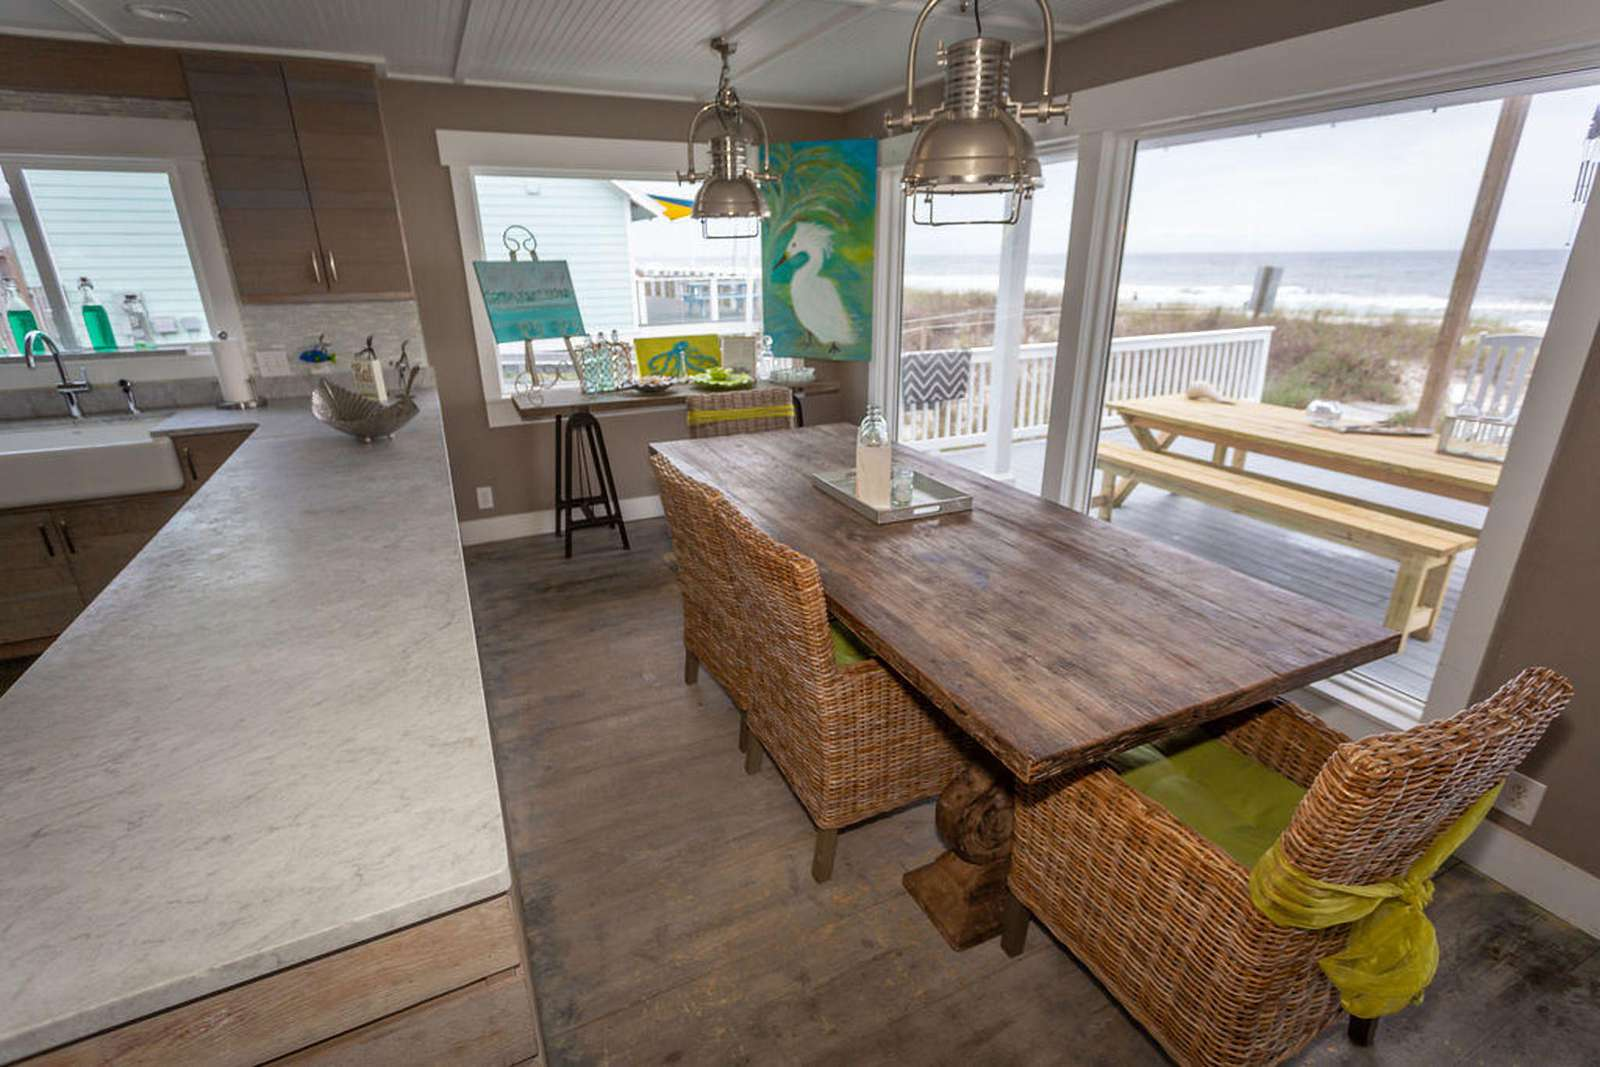 Kitchen bar overlooking the ocean